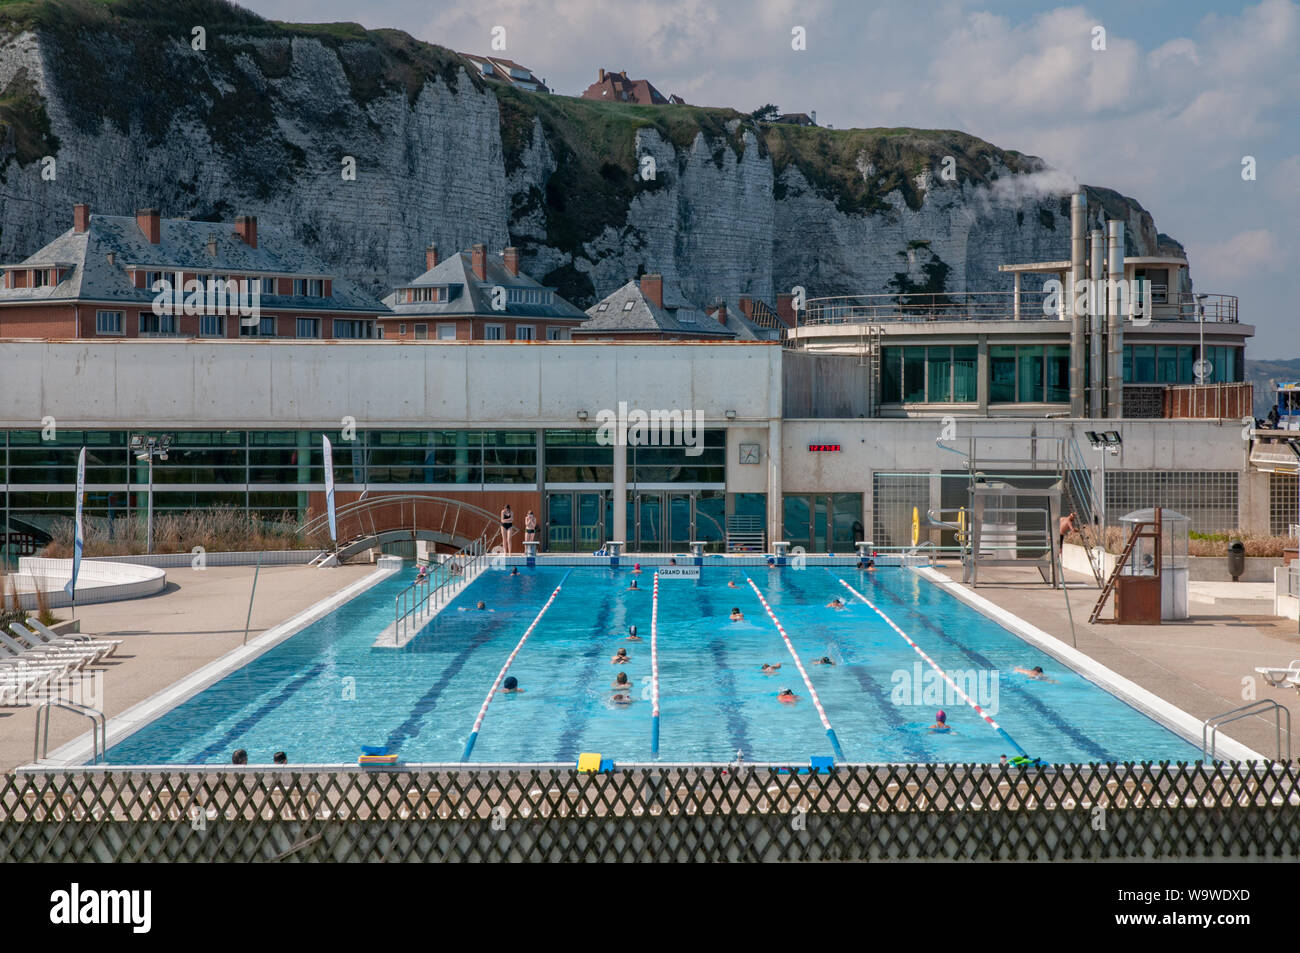 Immersion Piscines Et Spas public swimming pool in france stock photos & public